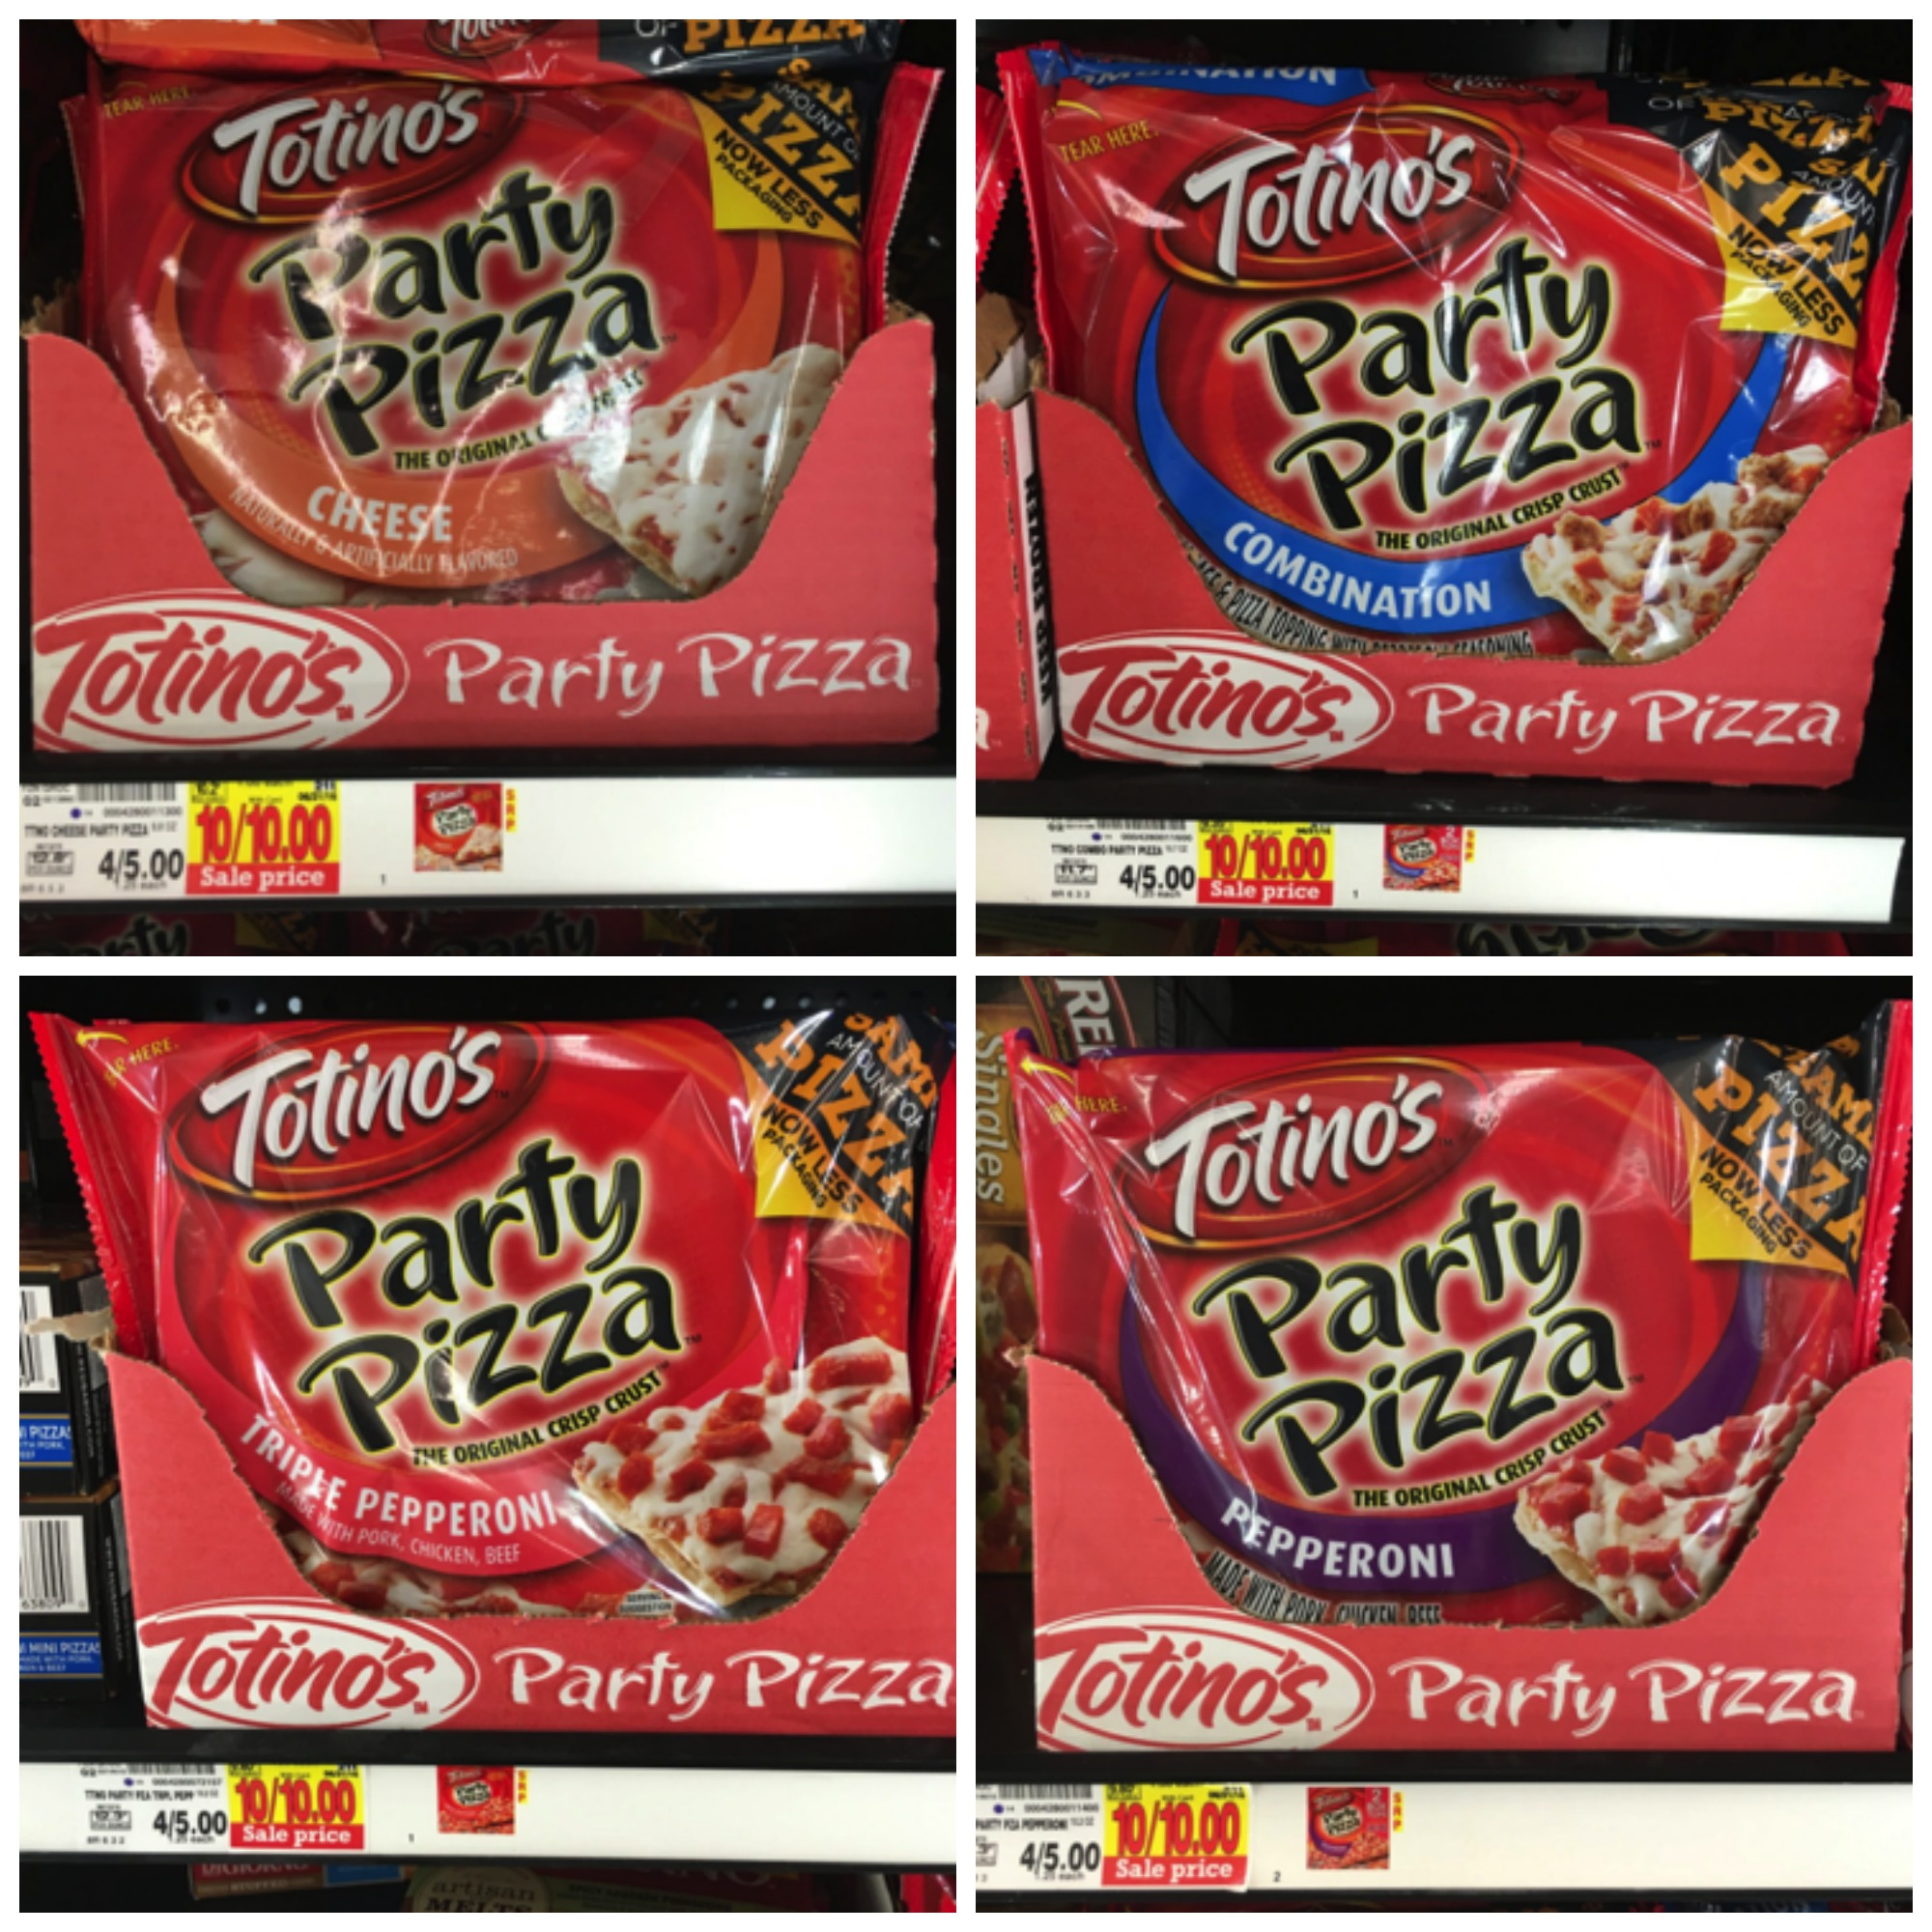 totinos collage